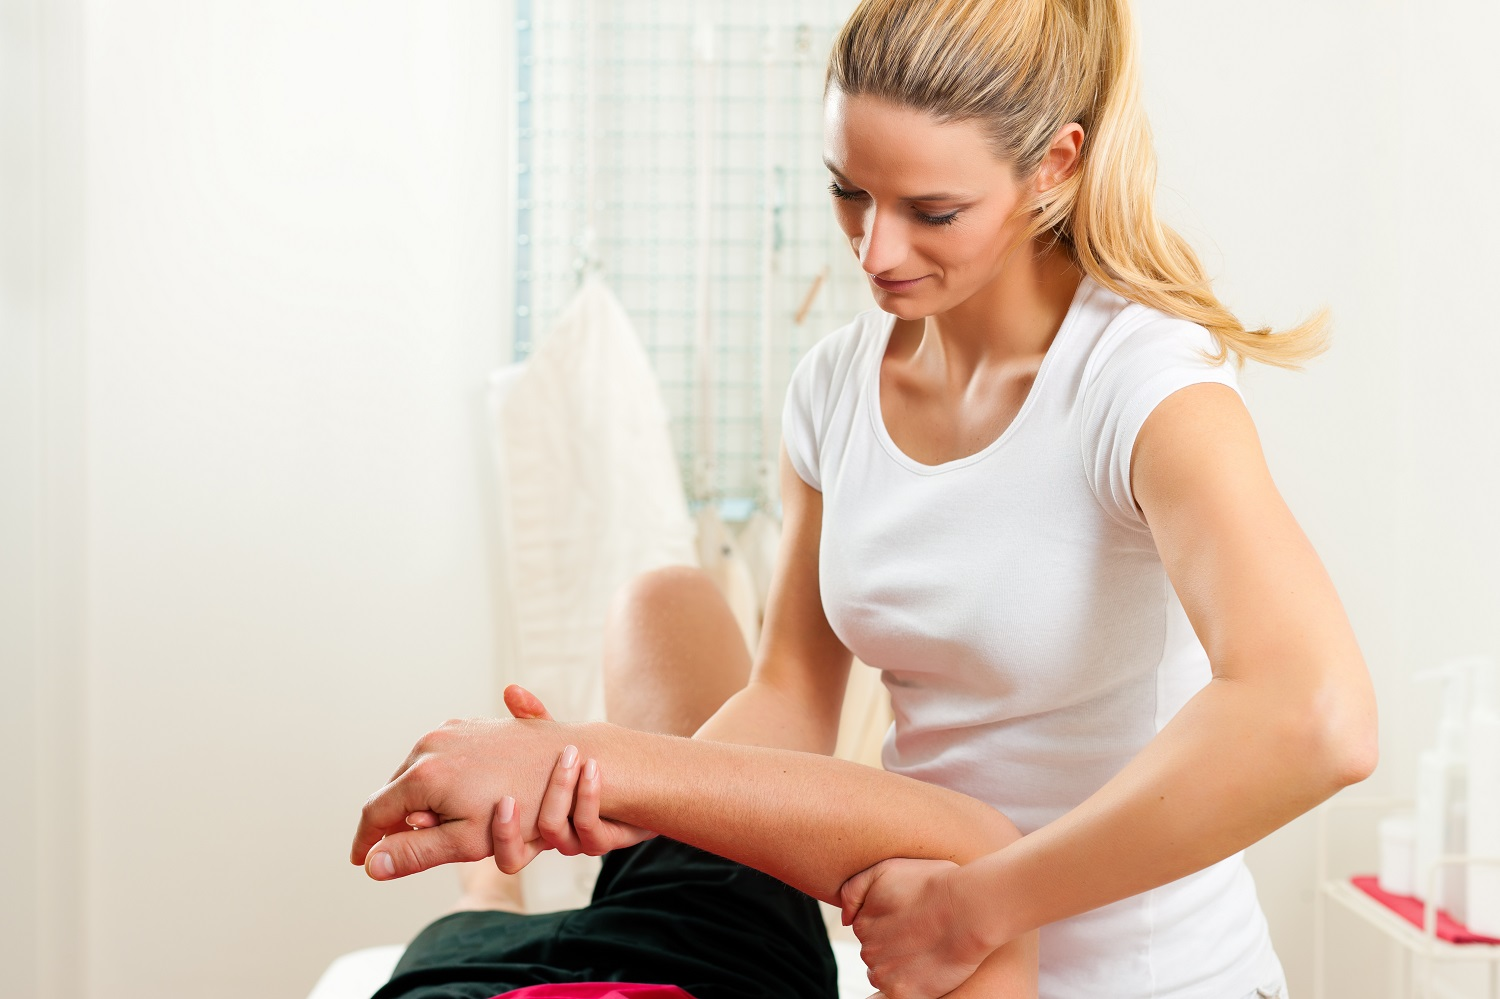 What Does a Physical Therapy Aide Do?